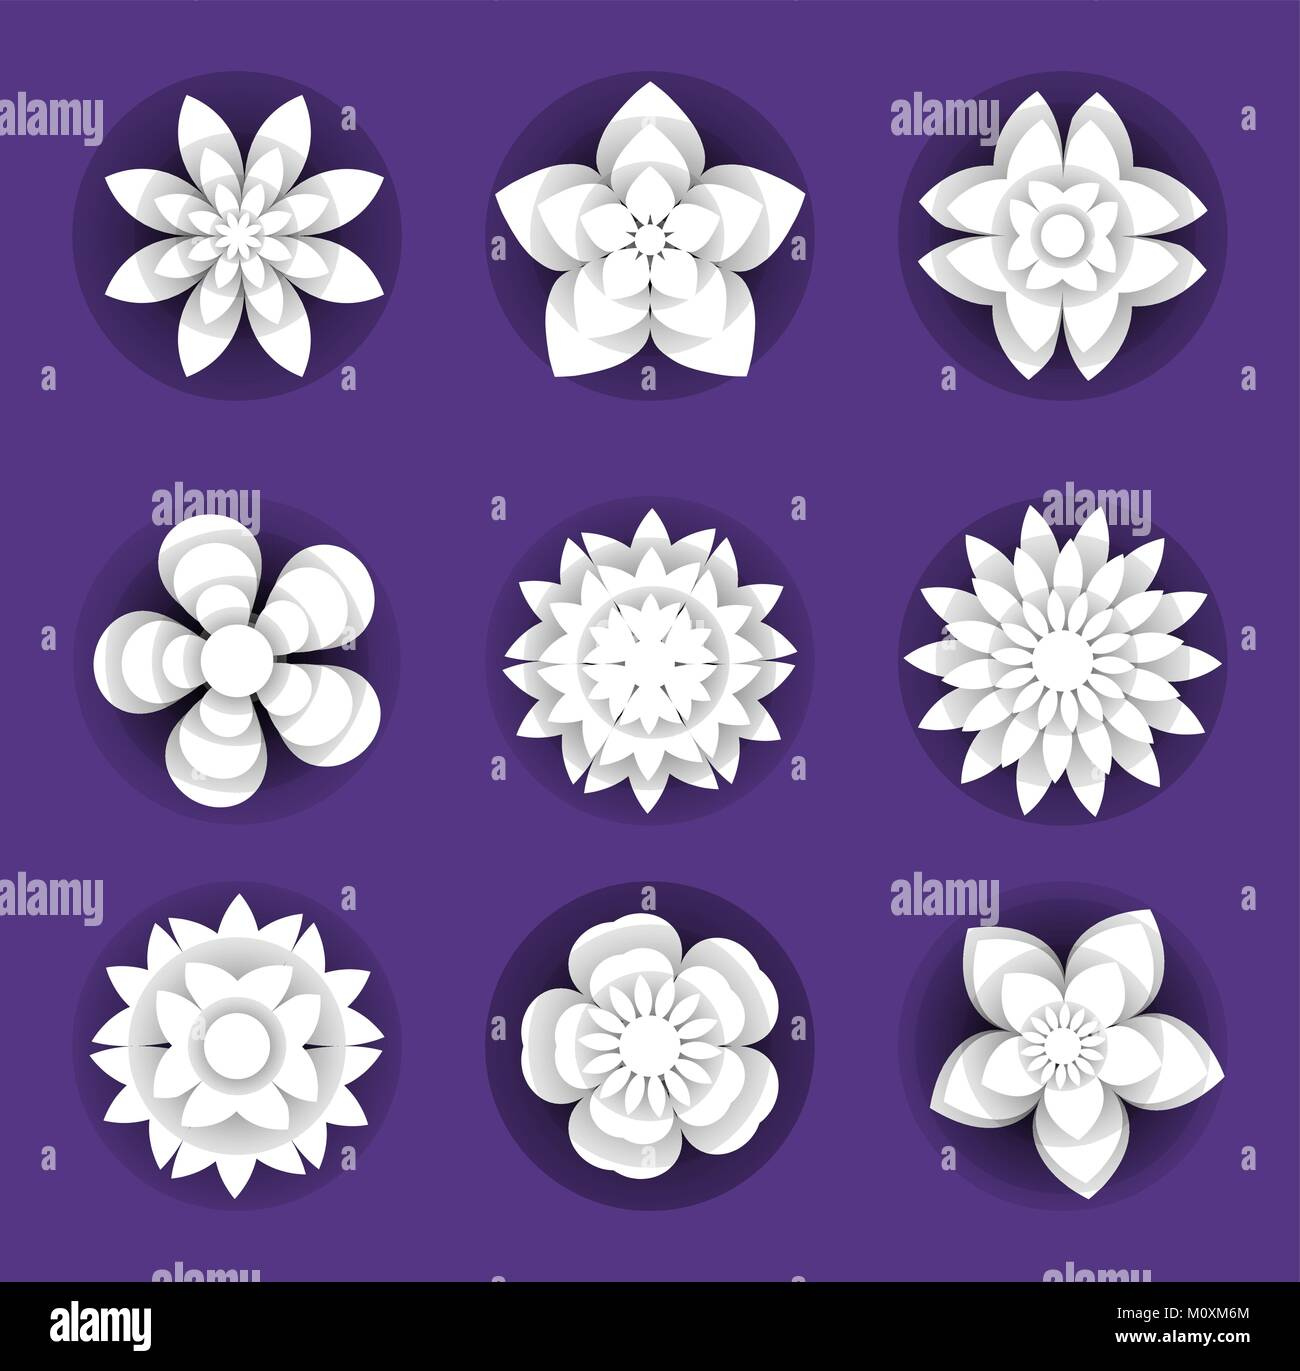 Flowers paper cut background set. Floral collection 3d style, papercut. Elements for your design. Carving or origami - Stock Image